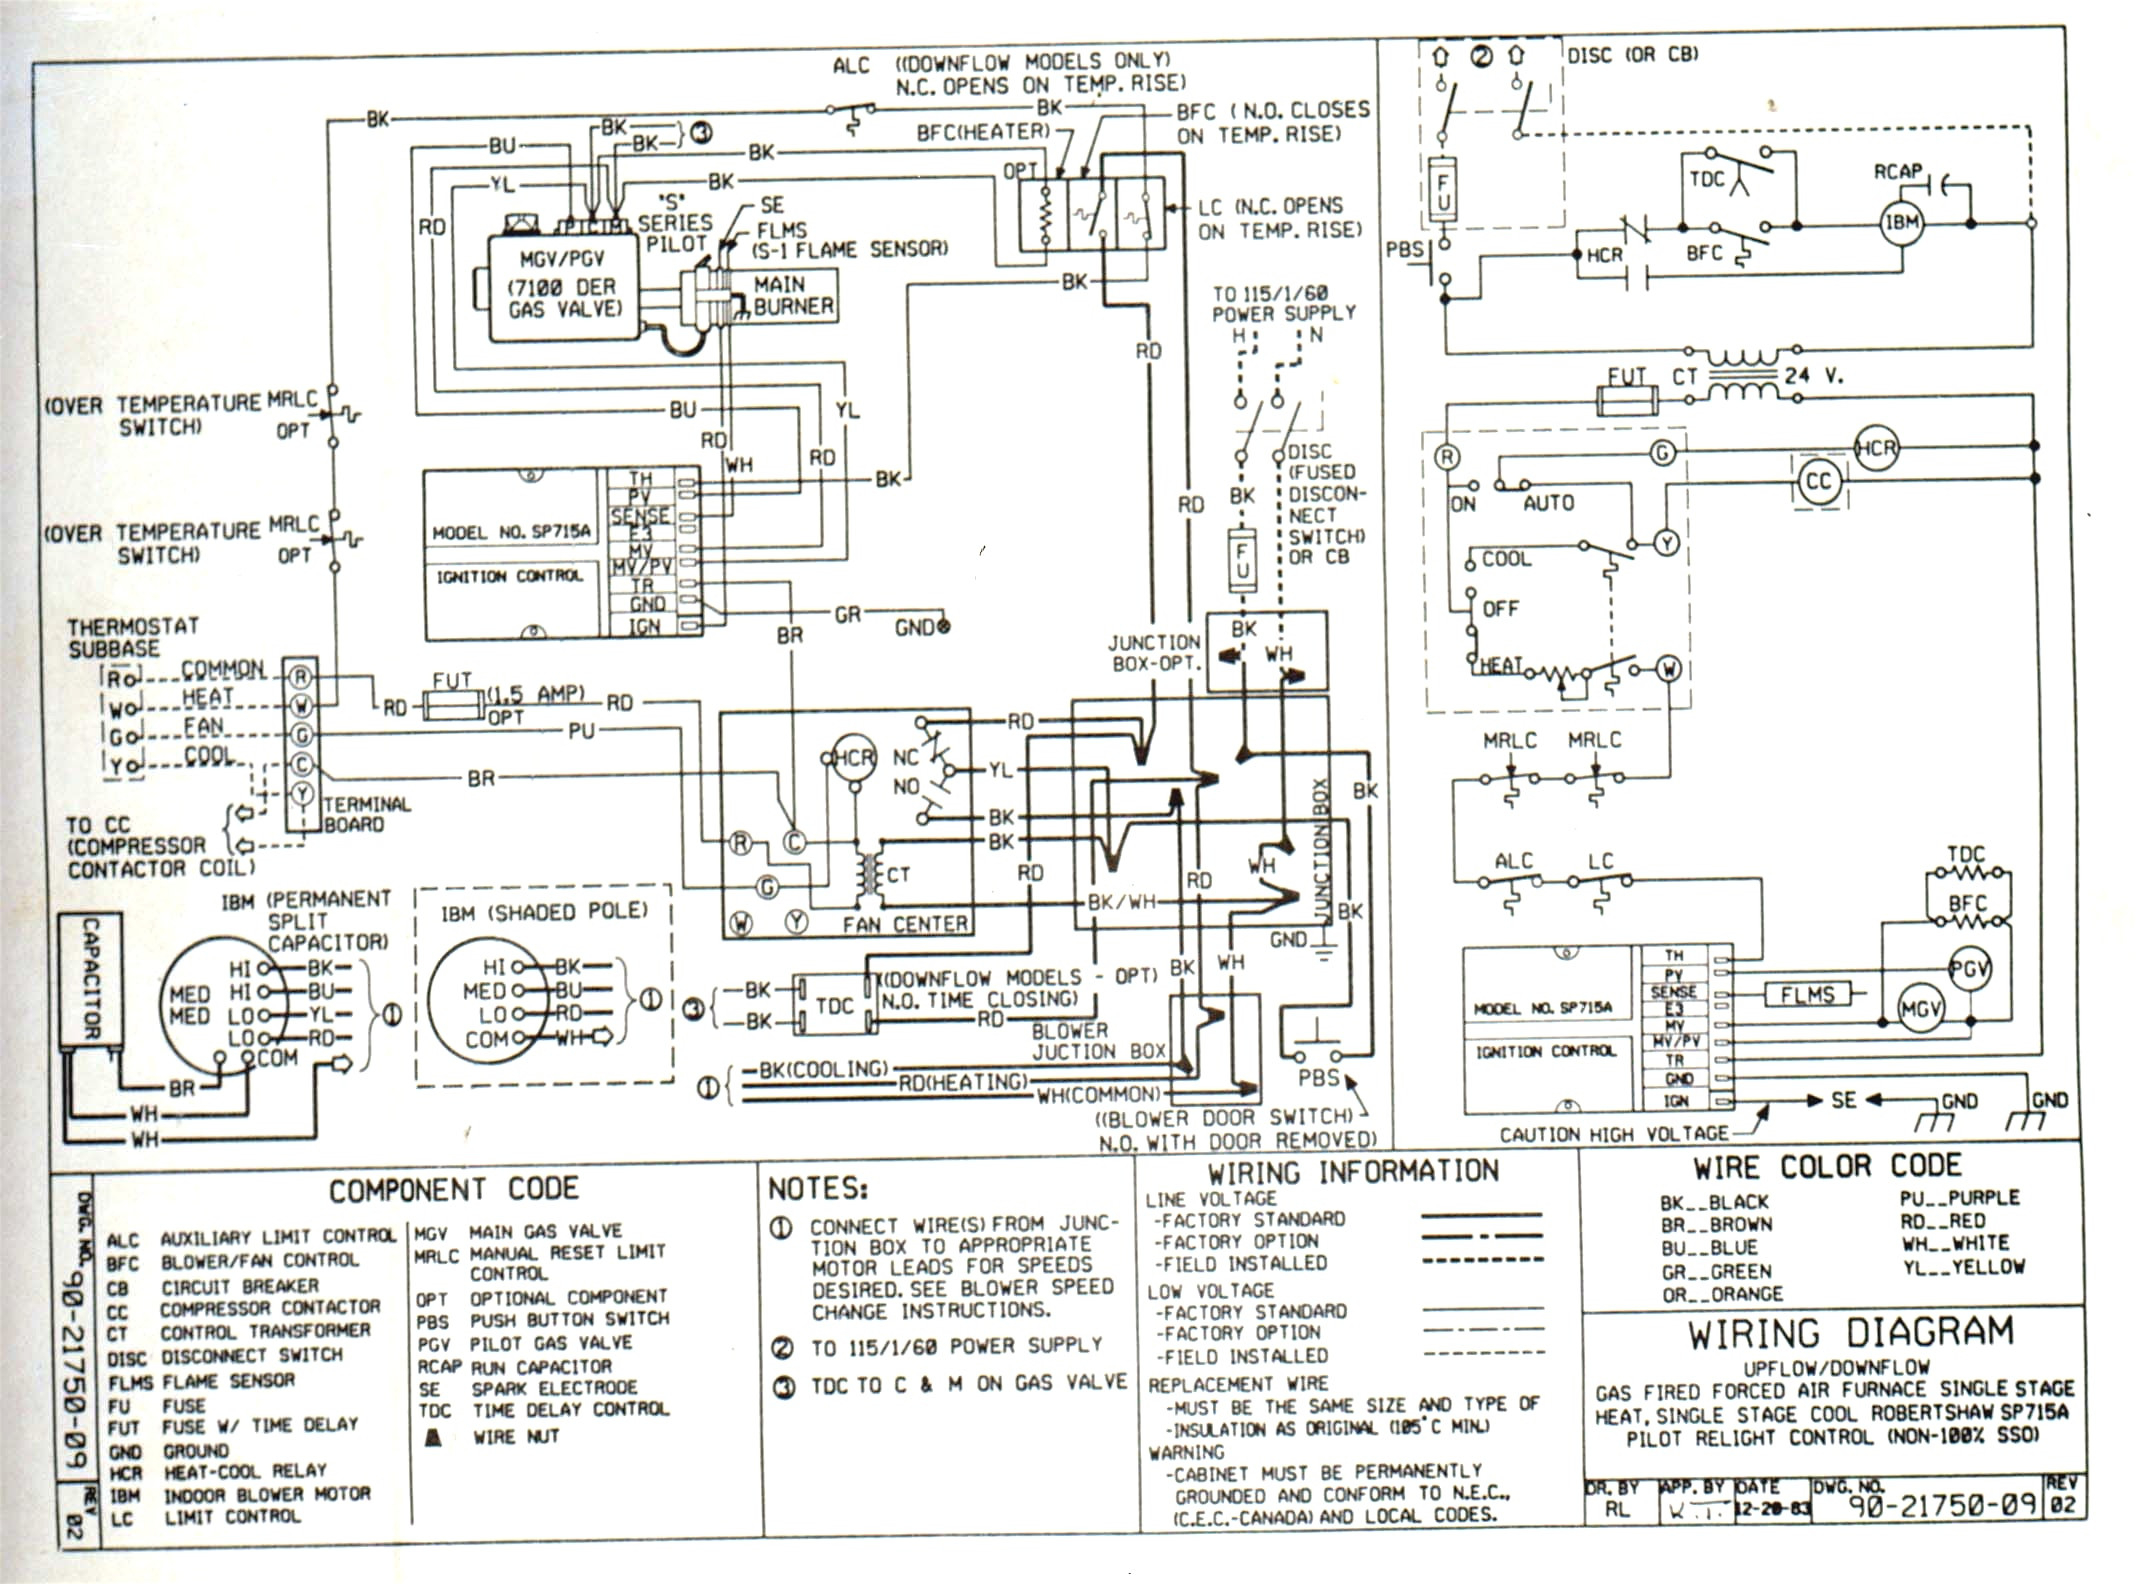 rheem heat pump wiring diagram Download-Wiring Diagram for Hot Water Heater thermostat Fresh Heat Pump thermostat Wiring Diagram for Rheem Hot 8-m